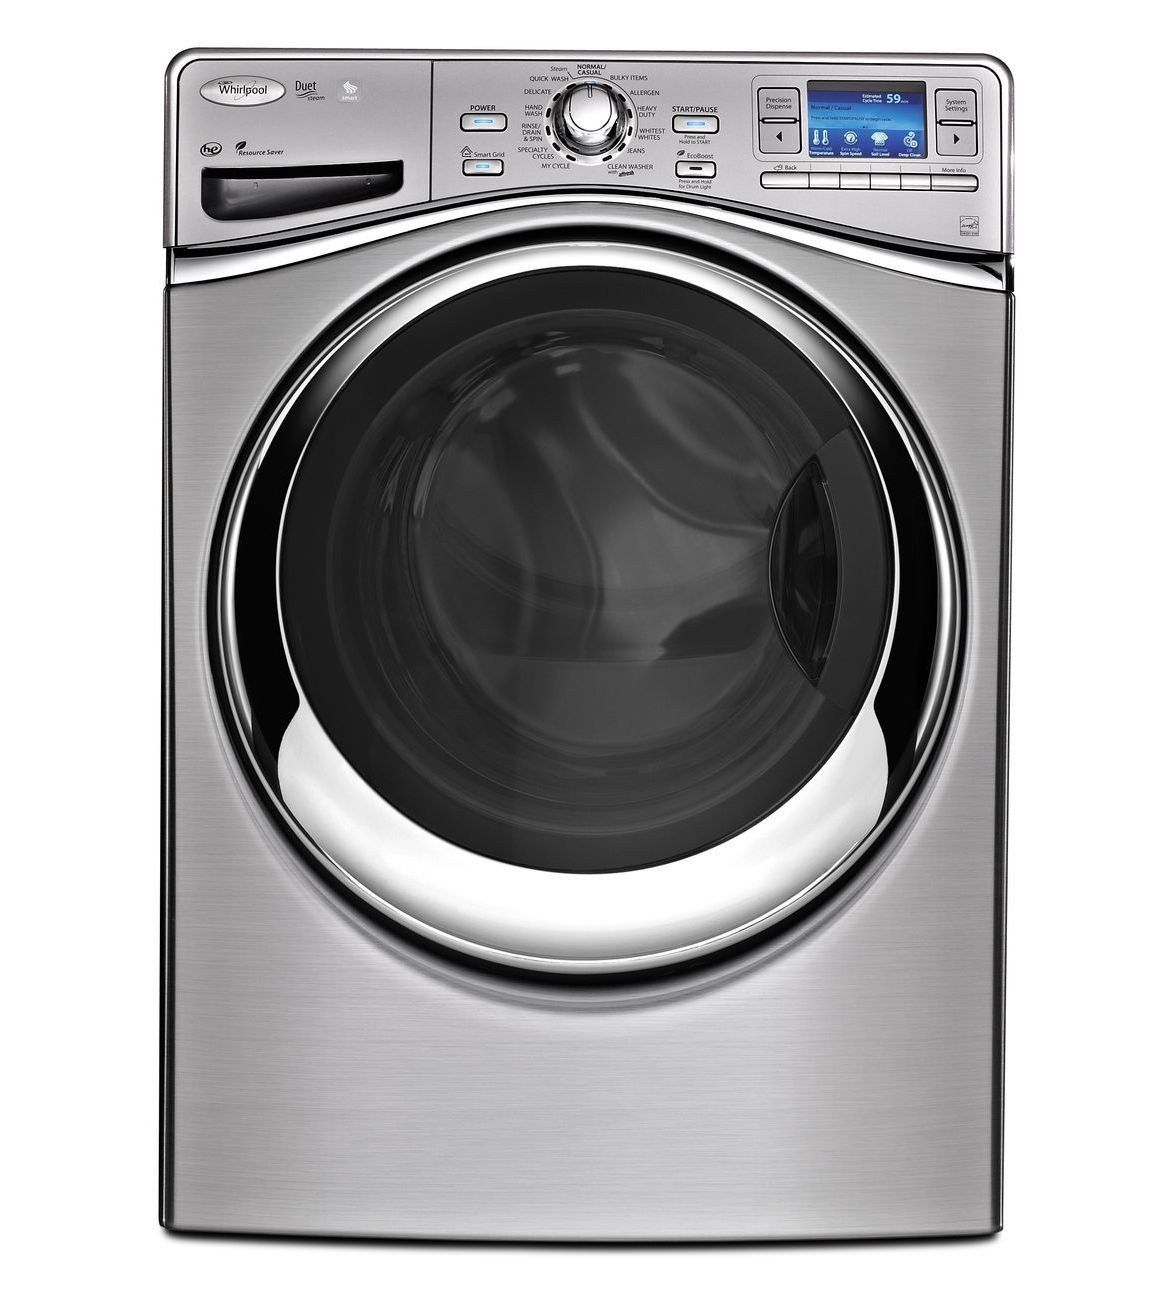 Washer And Dryer Calgary Wm3770hva Laveuse Lg Canada Meilleur Prix Et évaluations